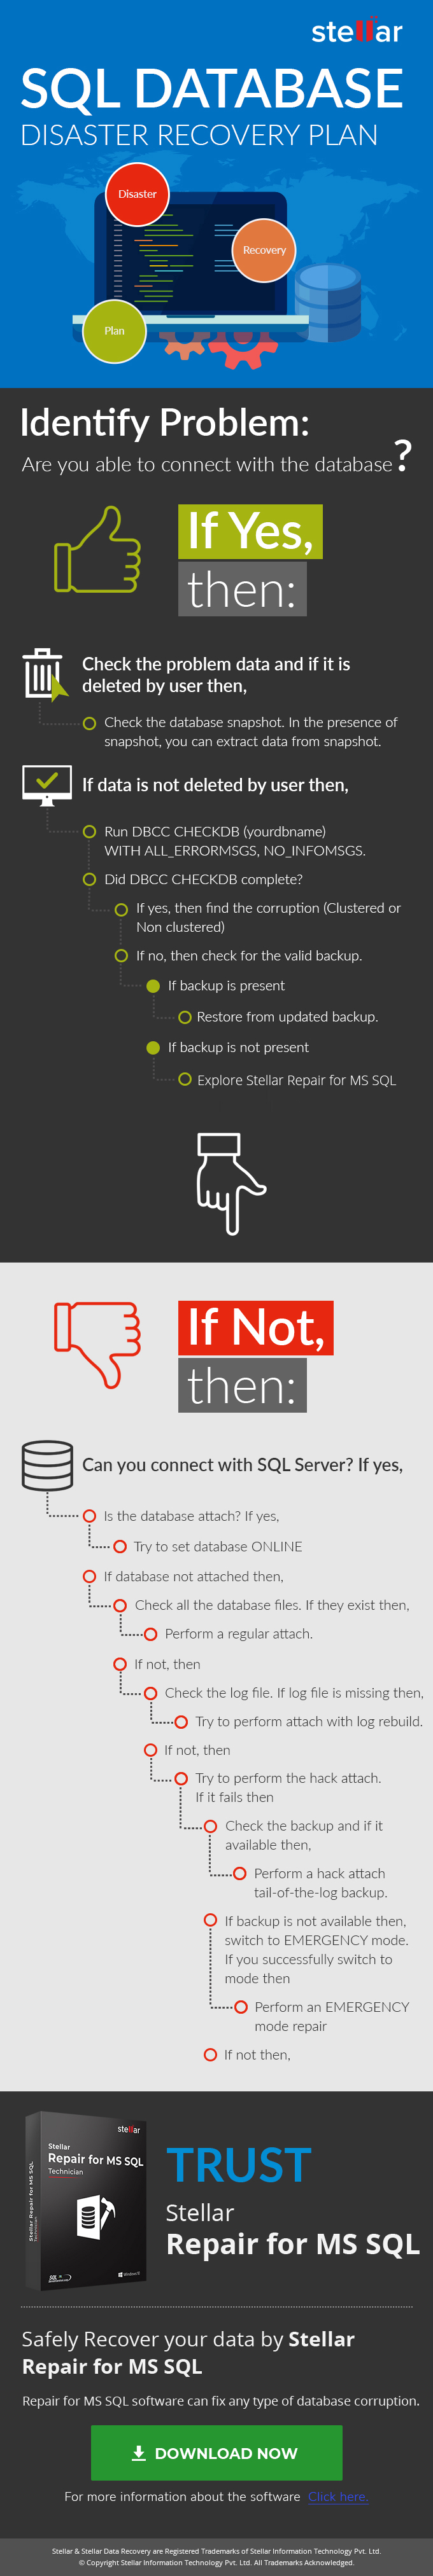 SQL Database Disaster Recovery